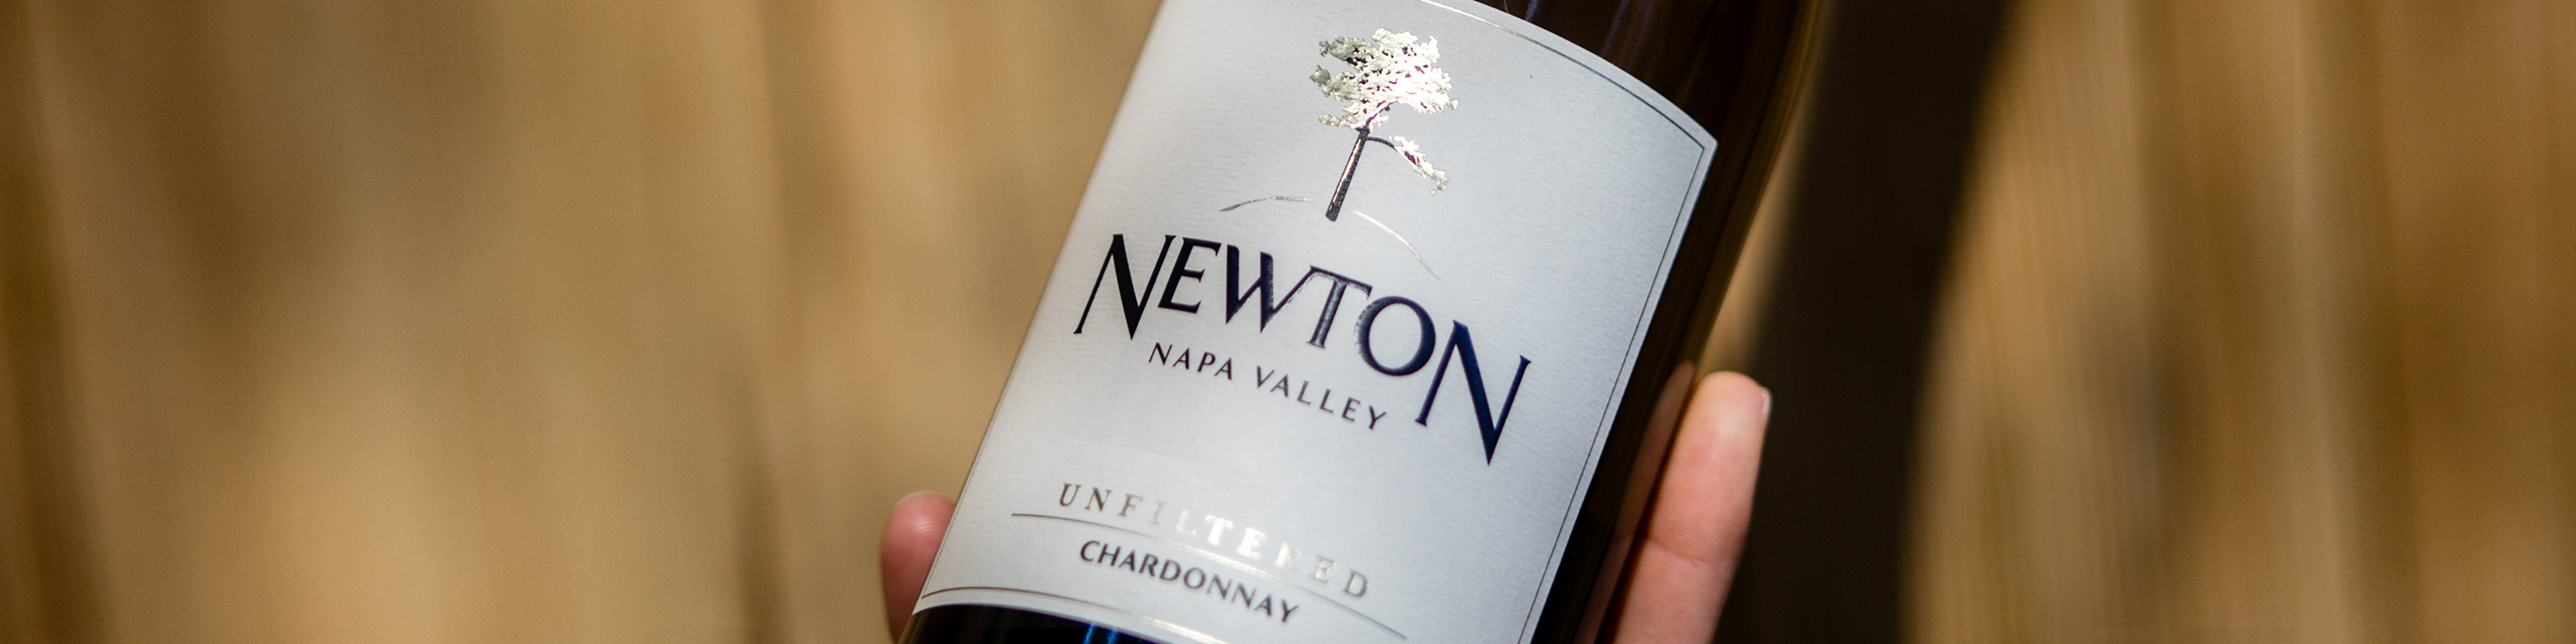 Newton is part of the prestige tier in the Estates & Wines portfolio. Made  up of Unfiltered, Puzzle and Single Vineyard. A California wine that produces Chardonnay as well as Cabernet Sauvignon  from prestigious appellations such as Spring Mountain, Yountville and Mt. Veeder.